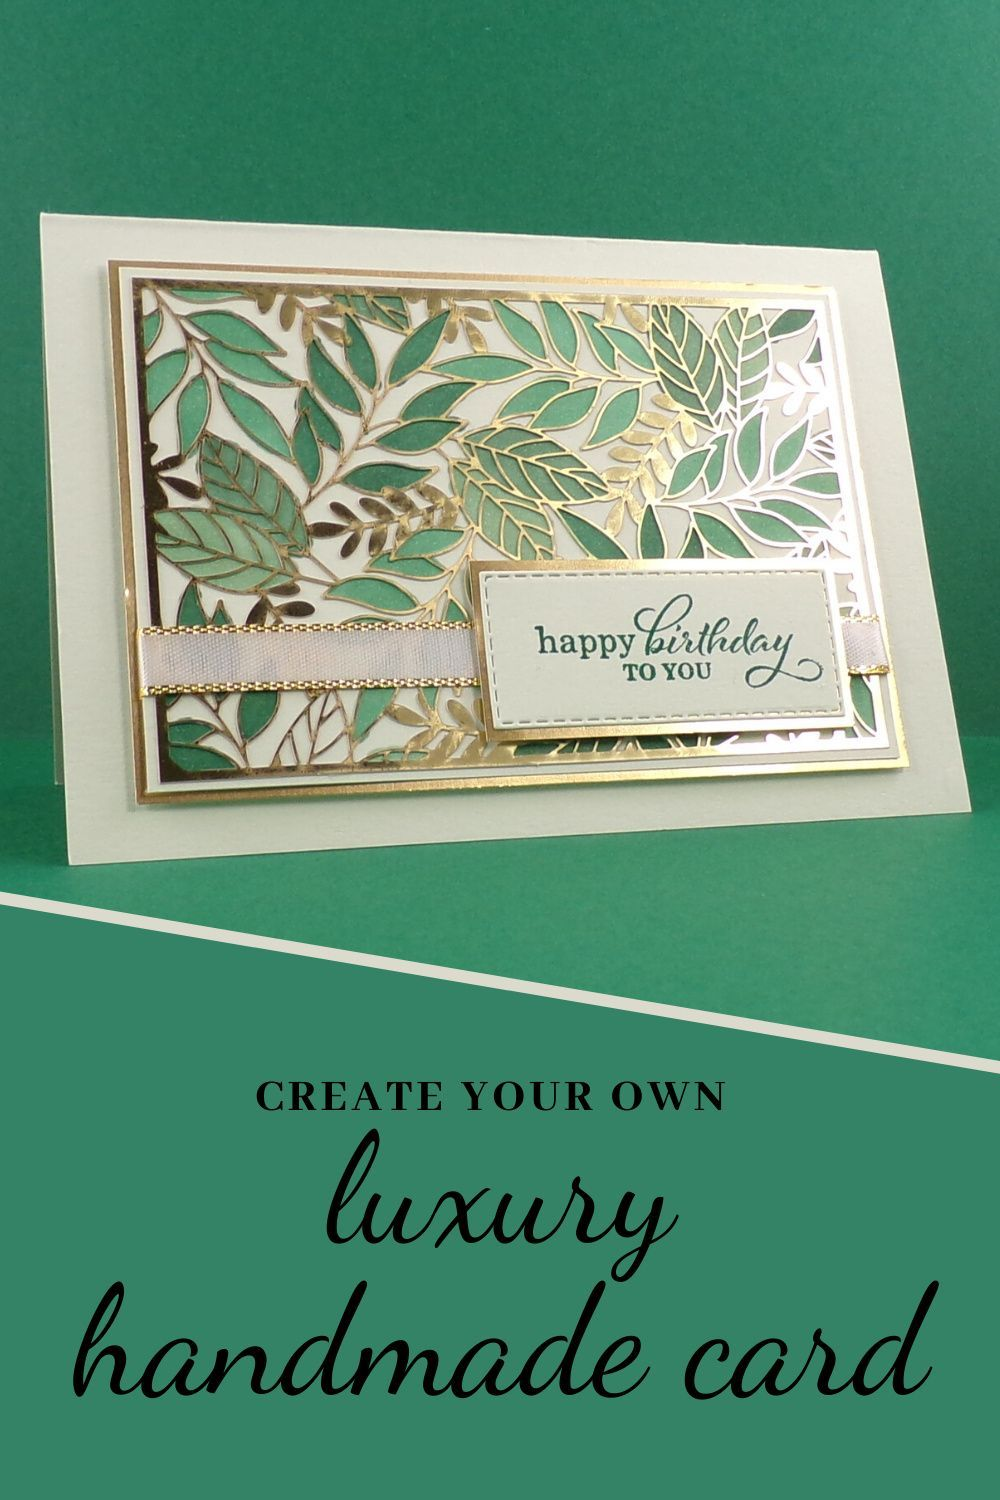 Use the step-by-step tutorial on our blog to create this gorgeous handmade birthday card yourself! This card was created by UK Stampin Up demonstrator Sarah Phelan for Sarah's Stampin' Retreat using the Forever Gold Laser-Cut specialty DSP from Stampin Up